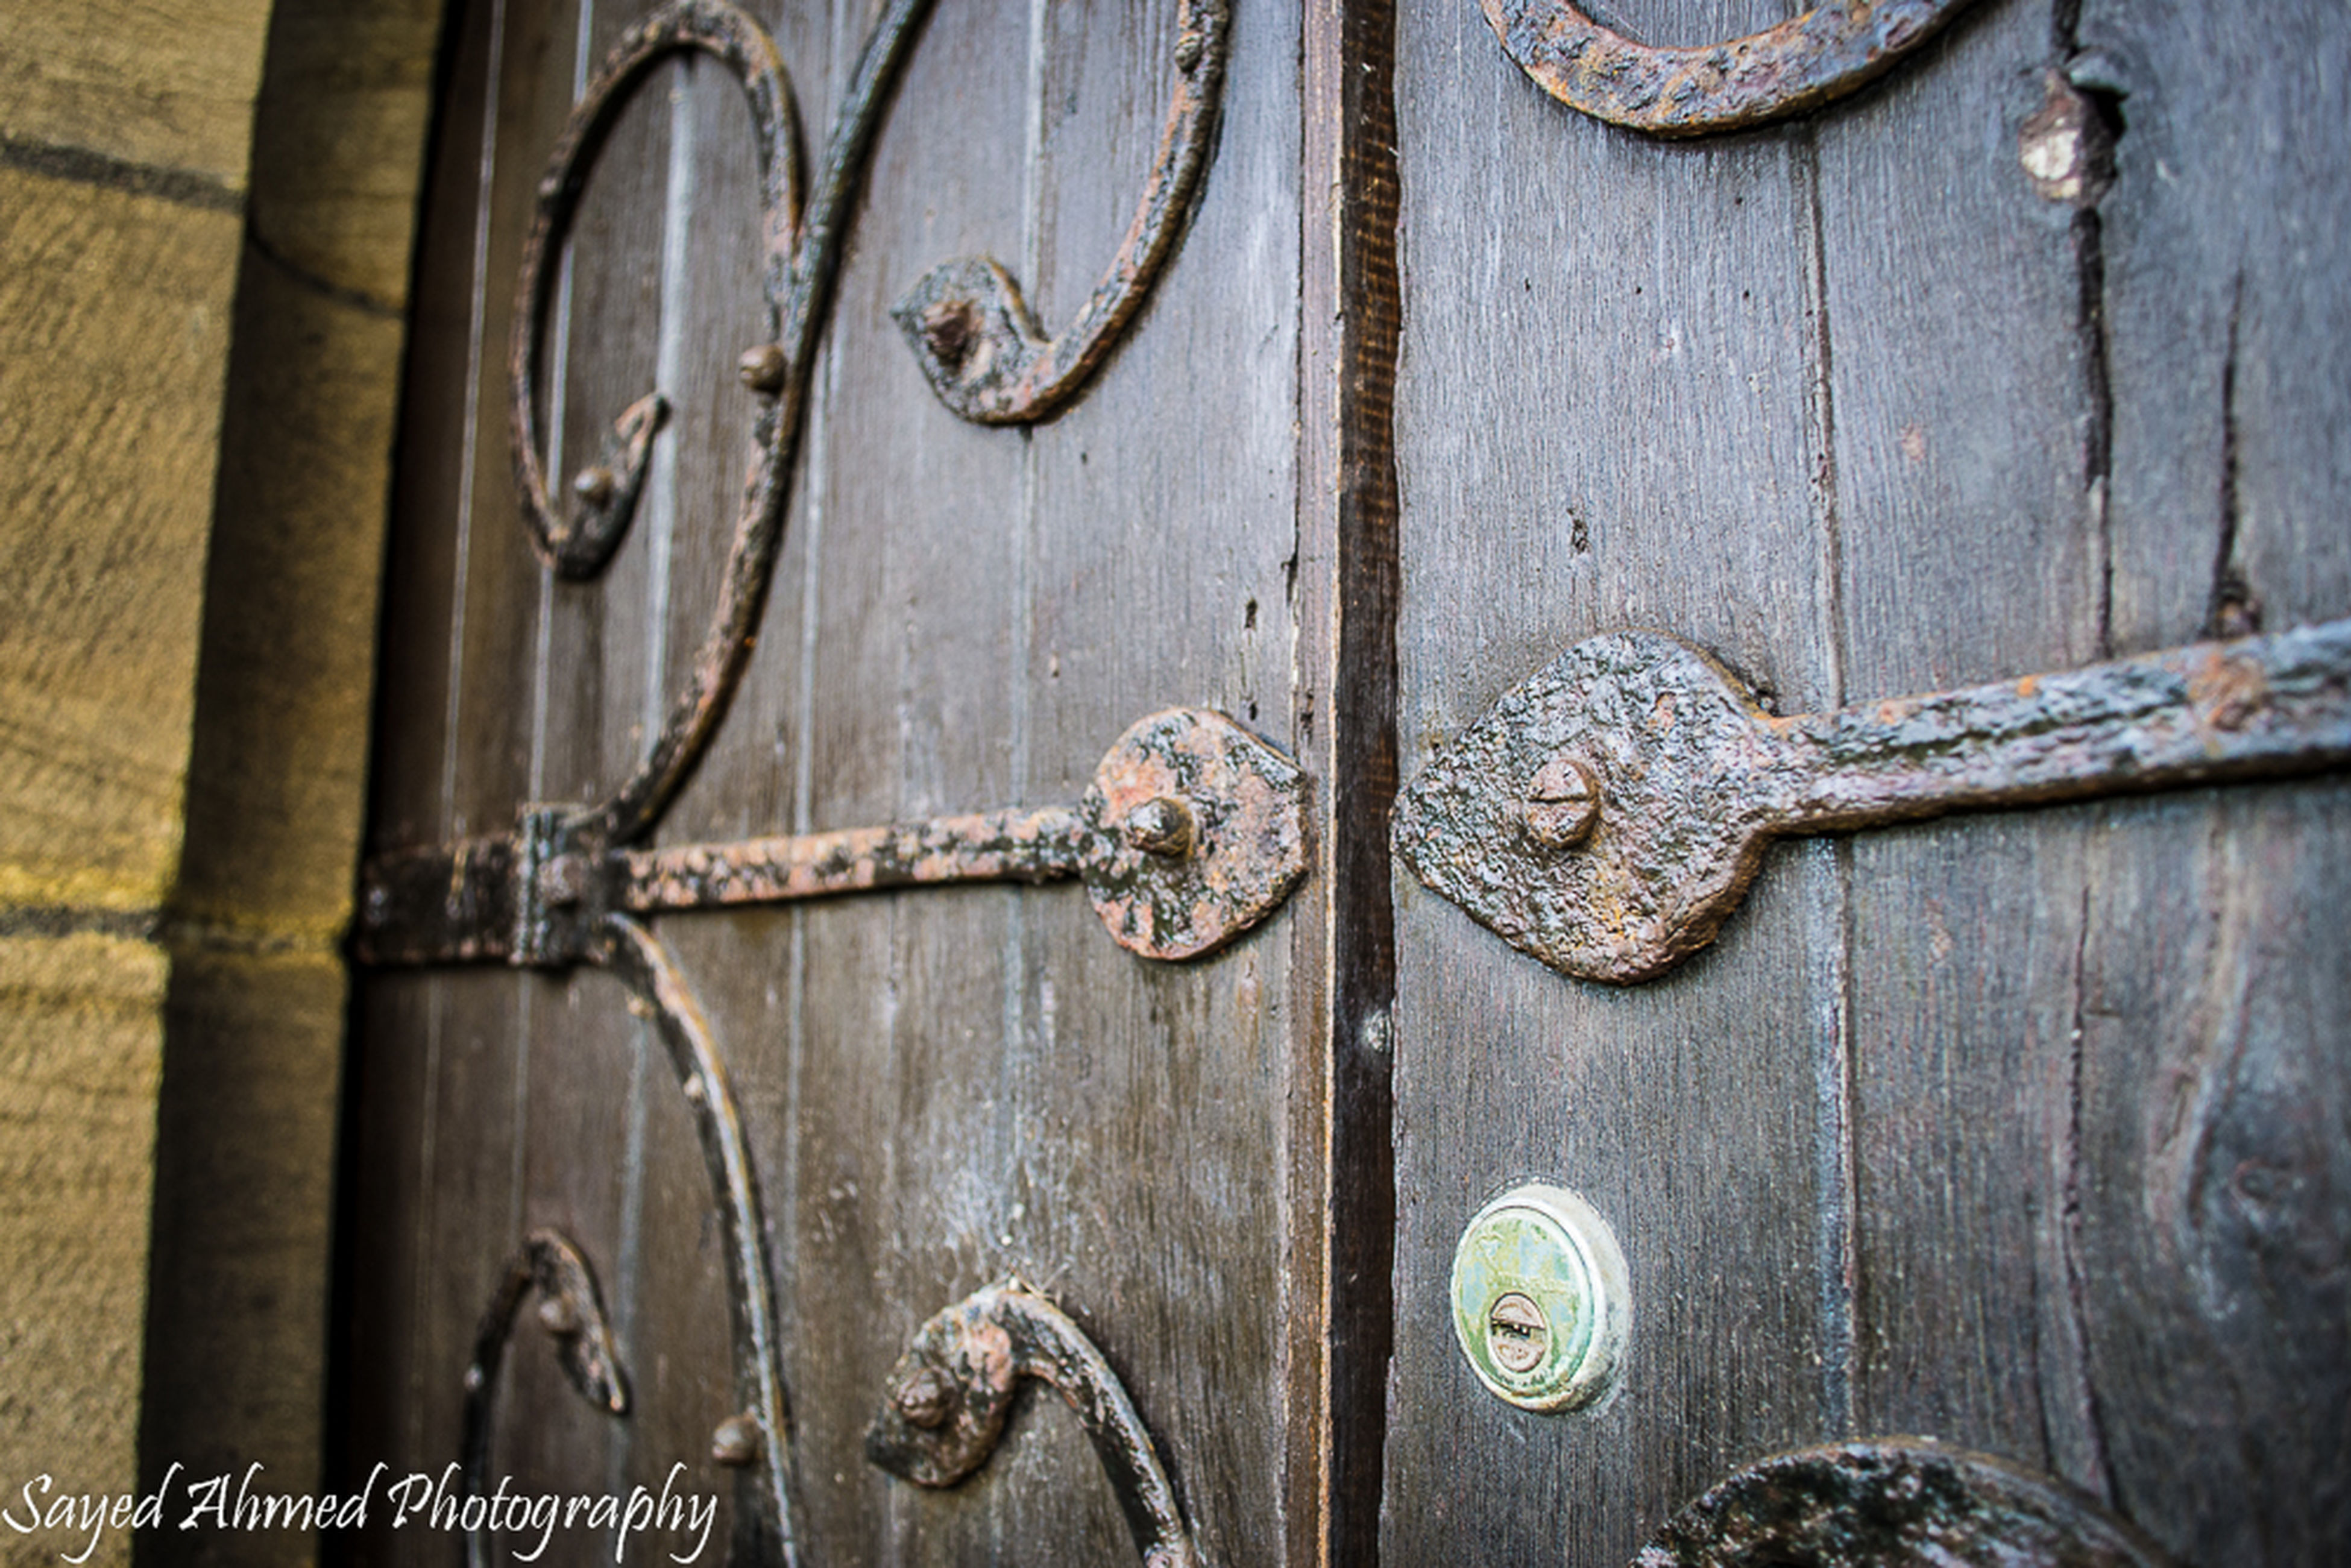 door, wood - material, metal, wooden, safety, old, security, protection, close-up, closed, lock, wood, full frame, rusty, part of, weathered, metallic, built structure, handle, backgrounds